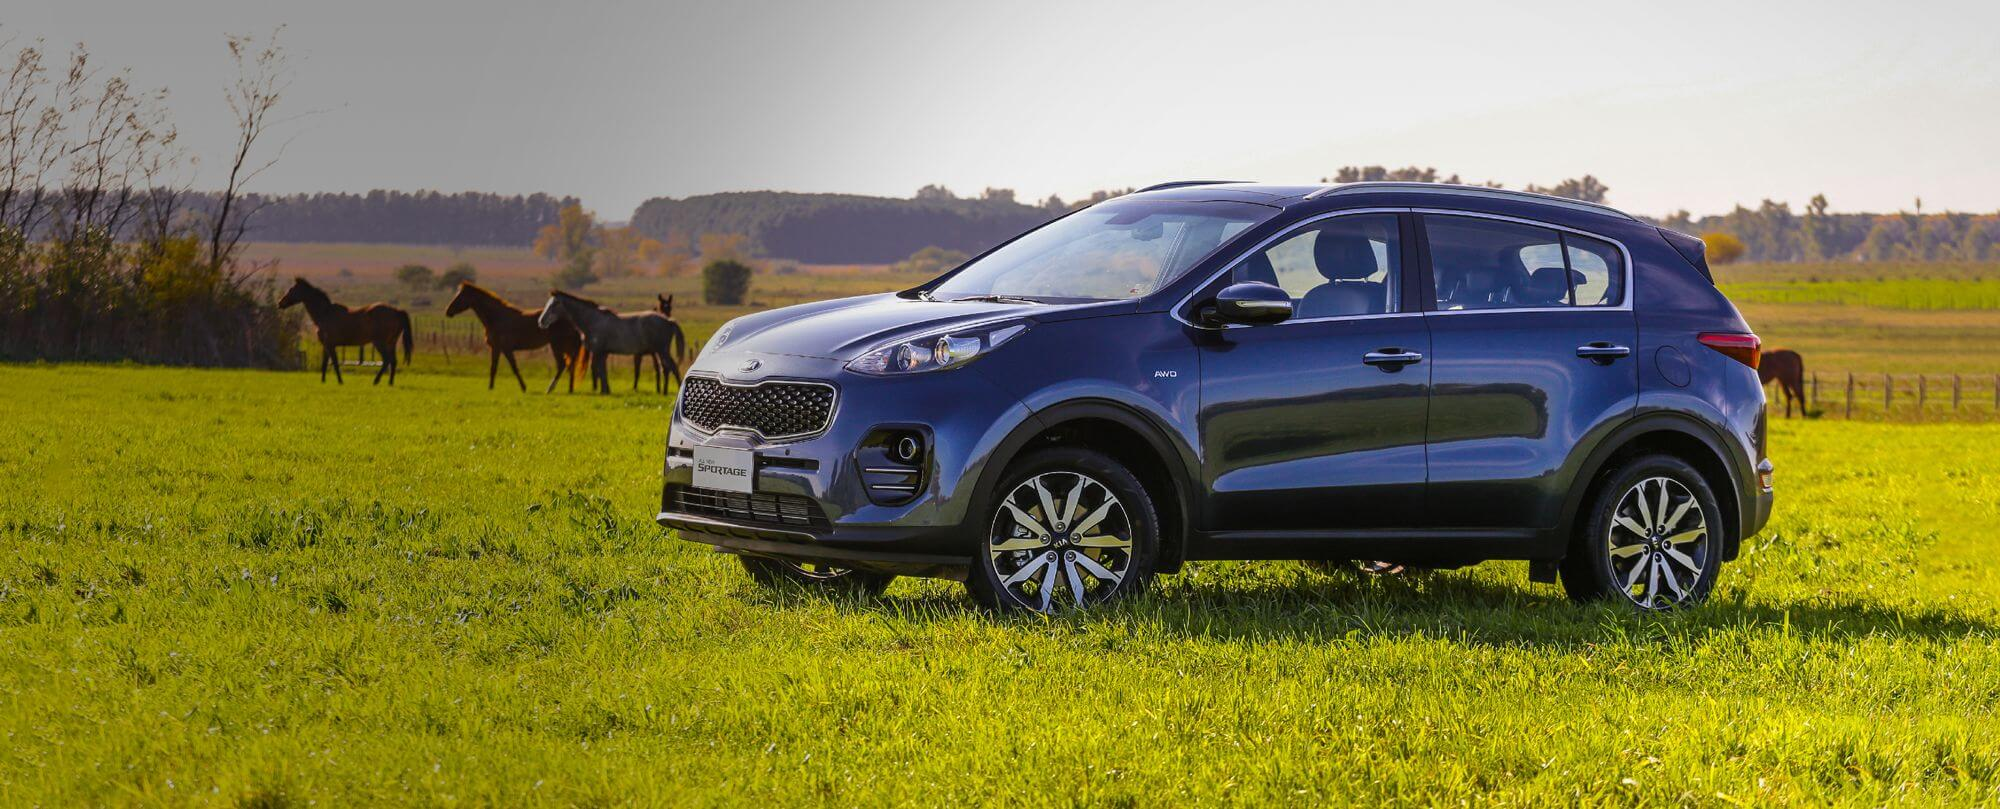 Home Slider Sportage